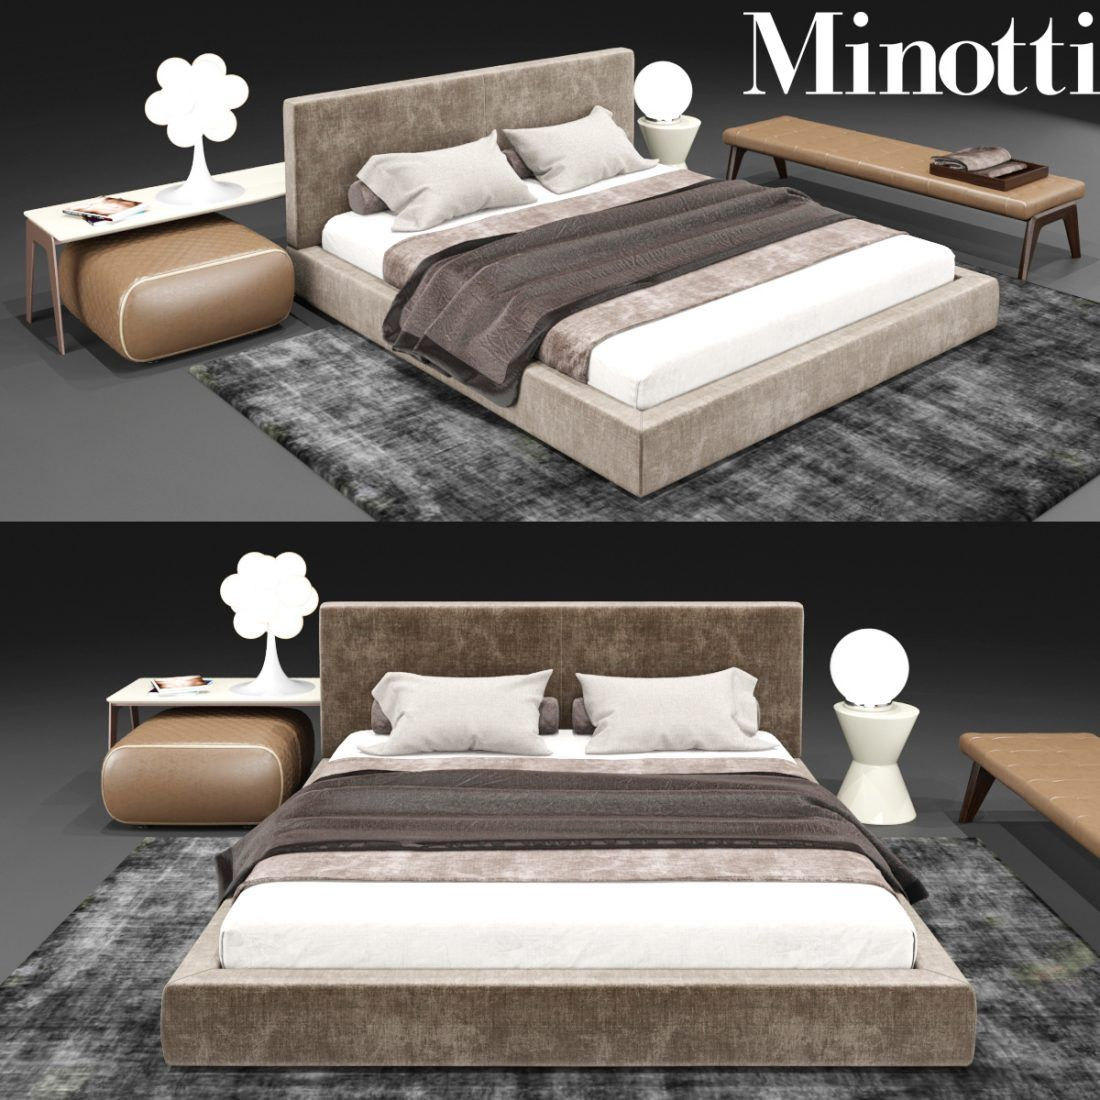 3D Minotti Set Bed Model 171 Free Download in 2020   Minotti. Bed. Bedding sets